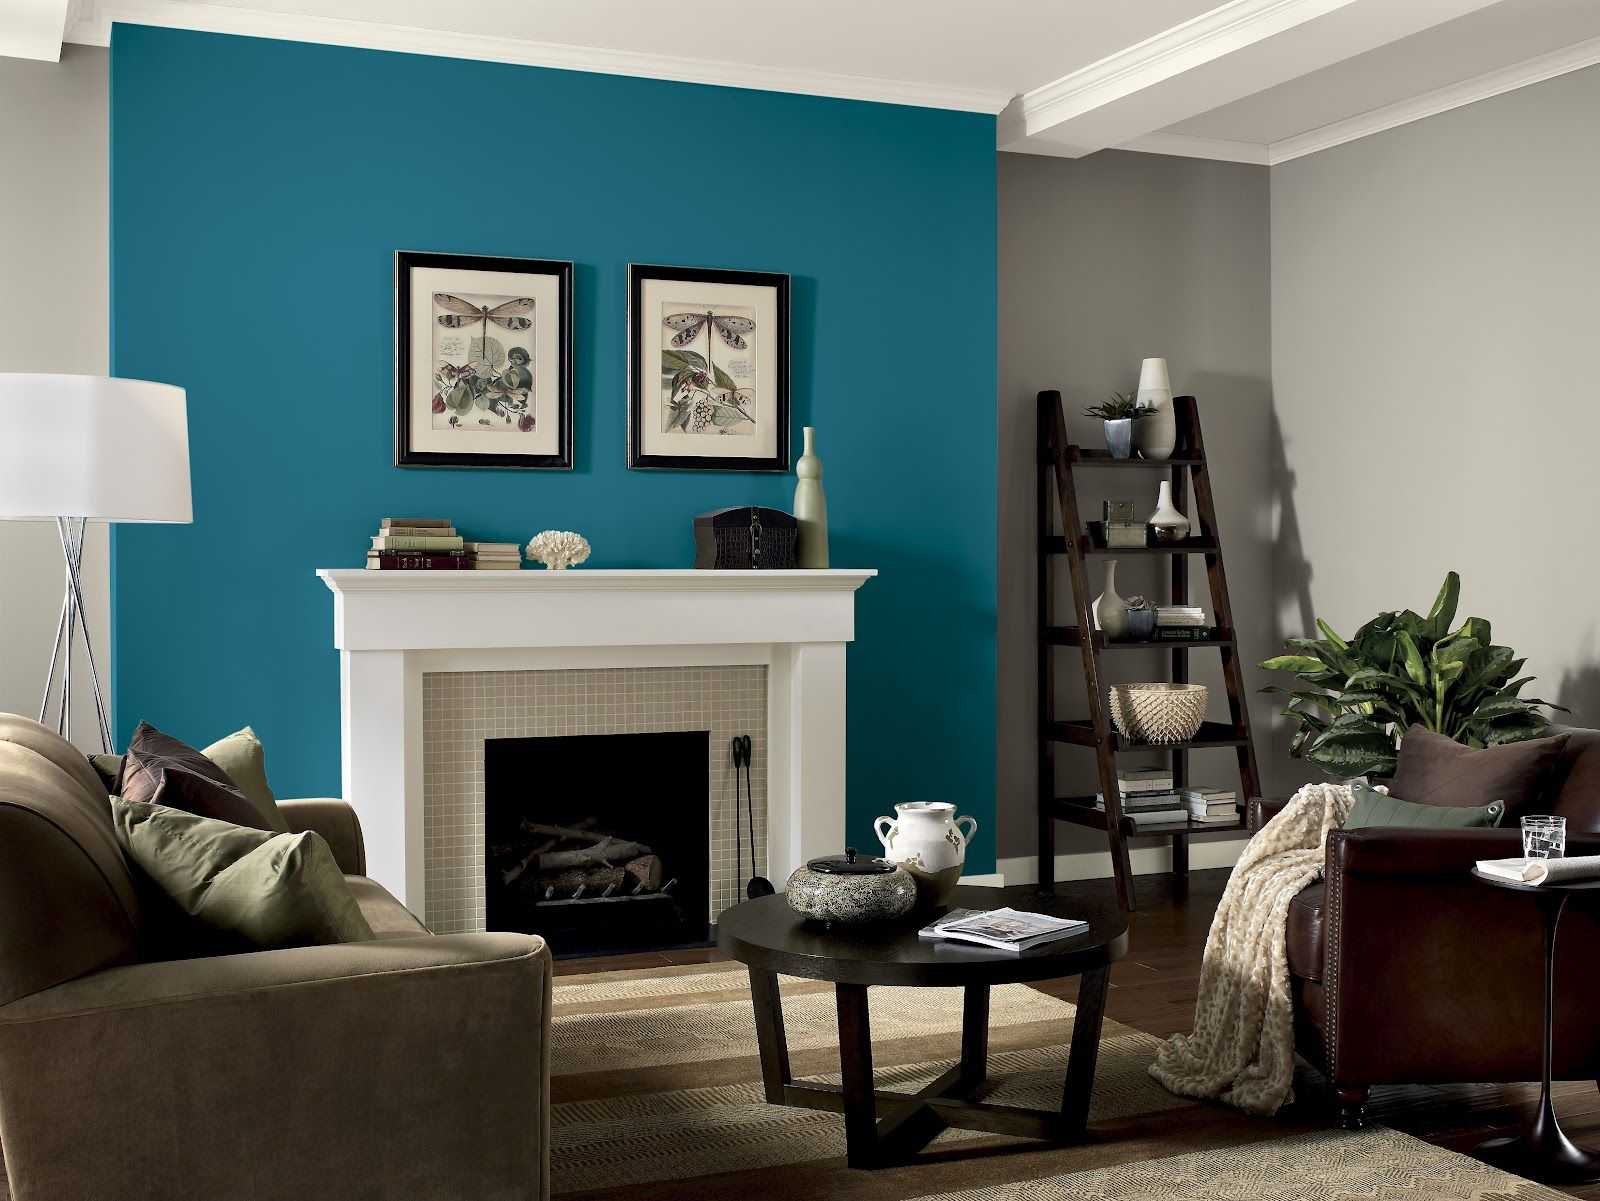 Teal And Grey Living Room! Love The Teal Accent Wall Against The White  Fireplace!